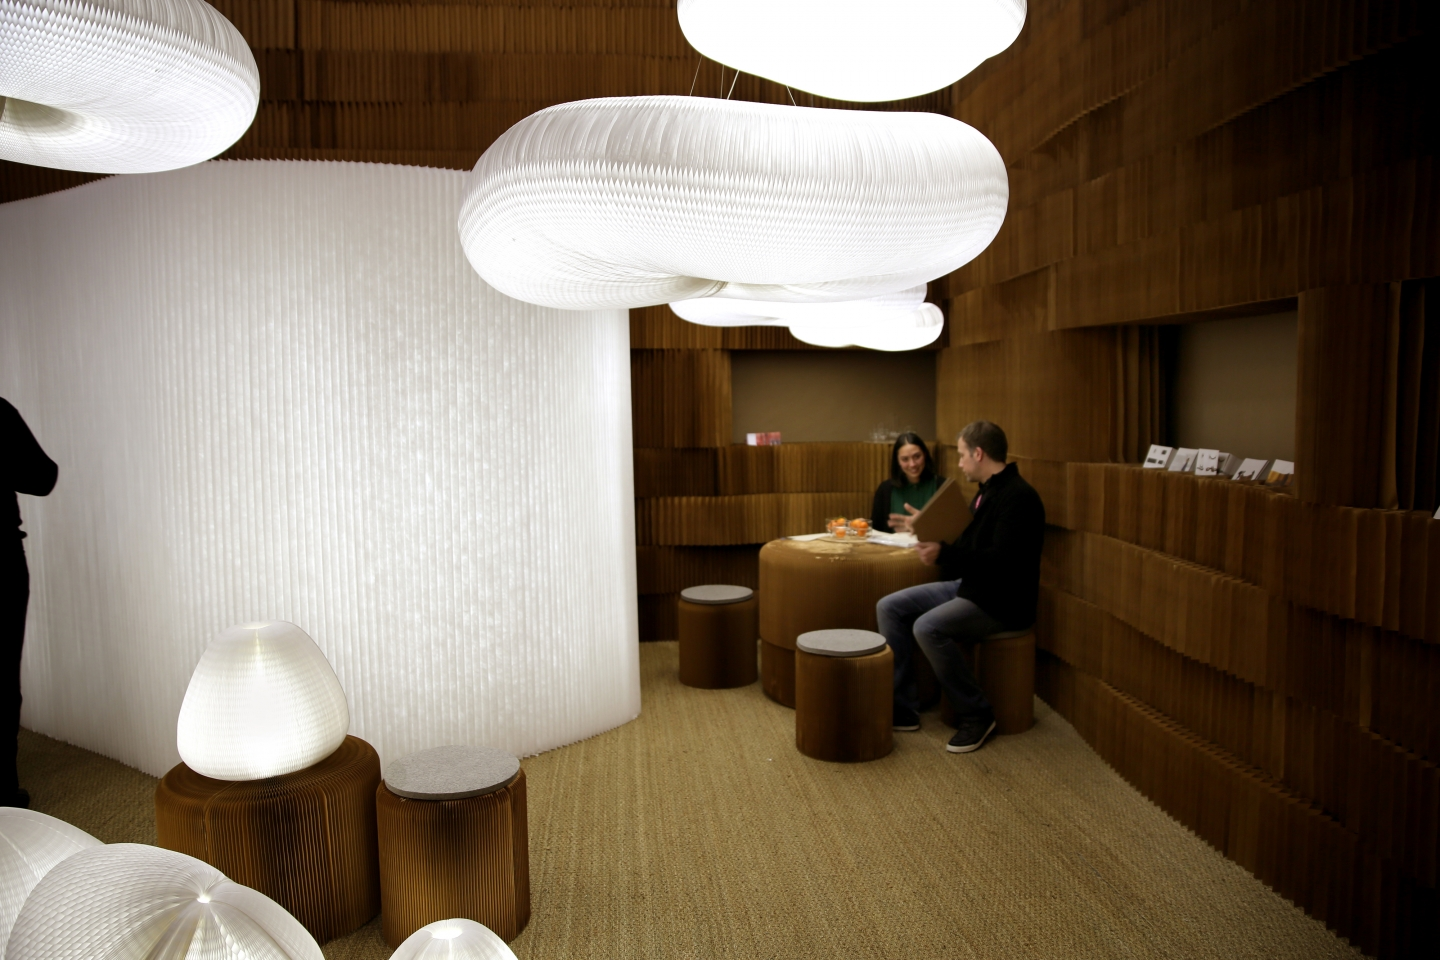 molo booth at Maison & Objet 2013. portable paper stool / cloud softlight by molo